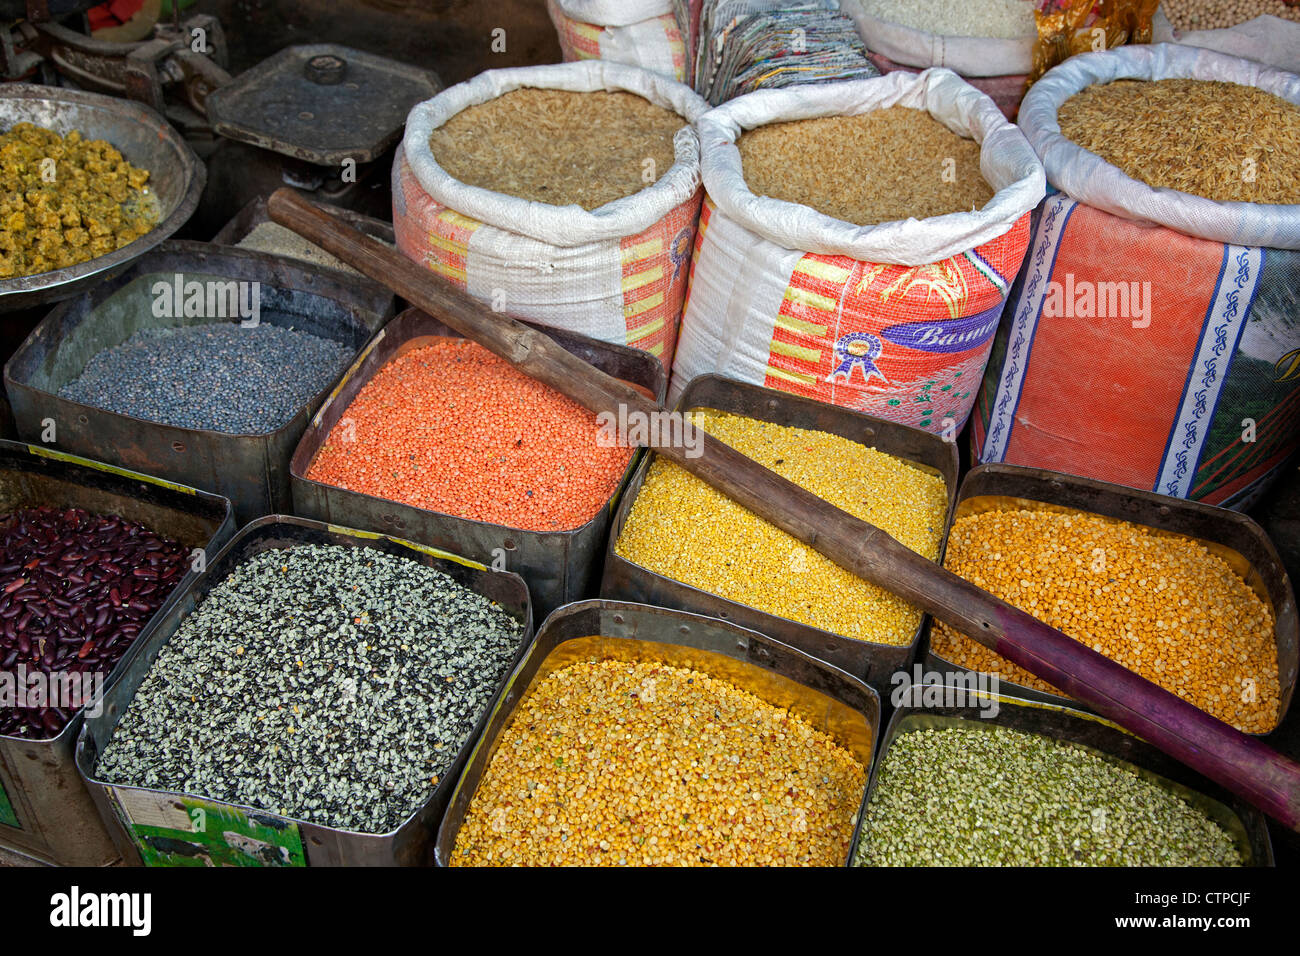 Colourful food ingredients like corn beans rice and for City indian dining ltd t a spice trader